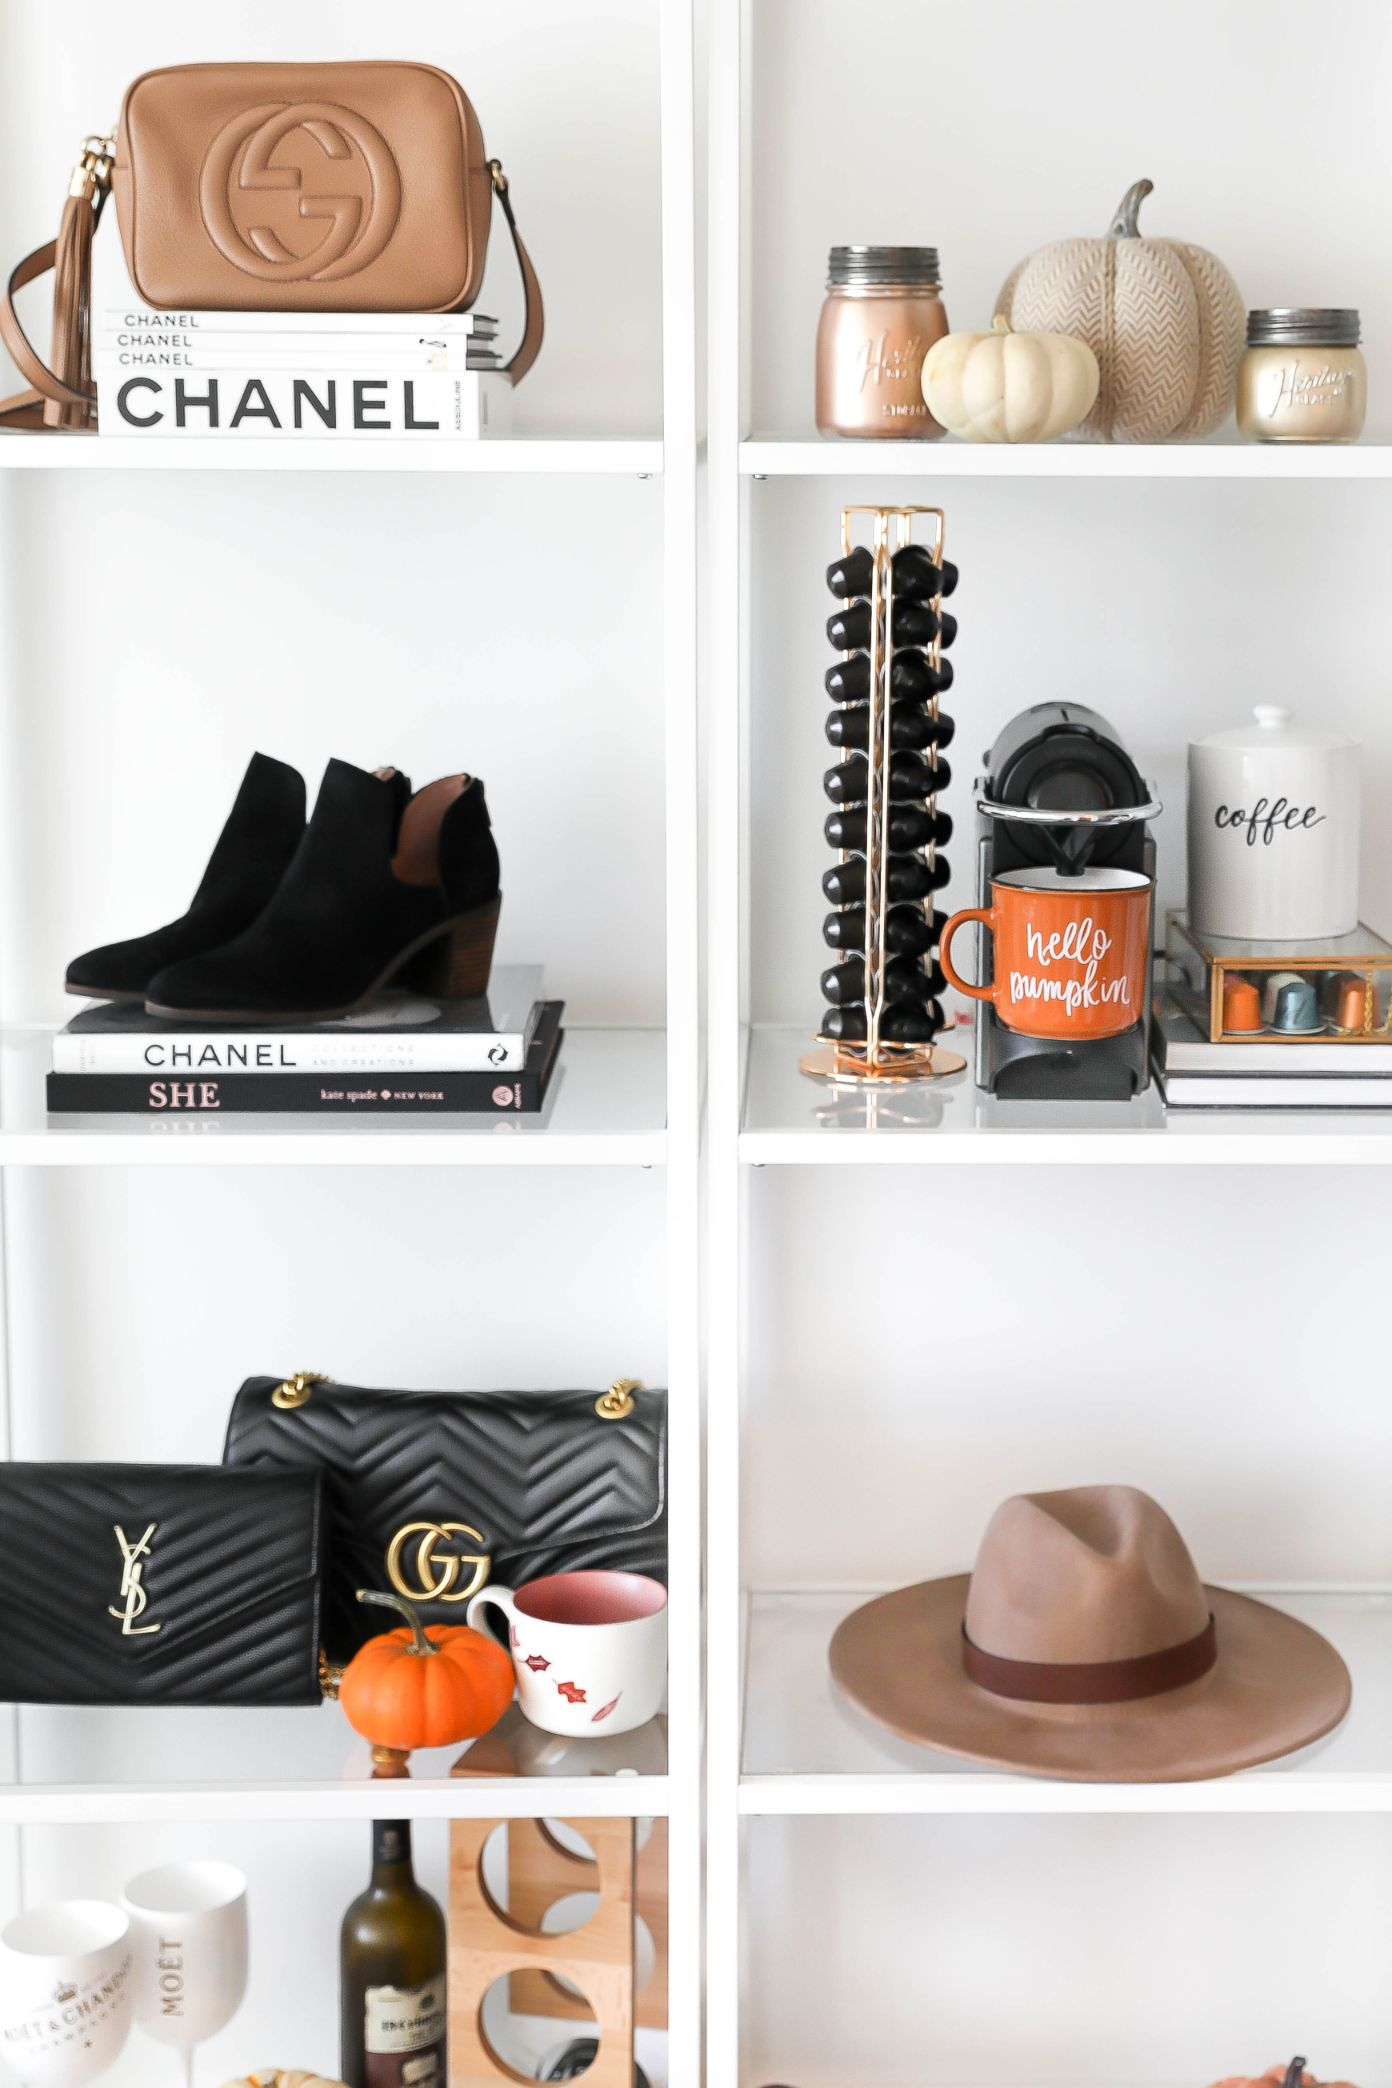 Fall Decor! Cute inspiration for your bar cart or coffee bar! Autumn Decor on Fashion Blog Daily Dose of Charm by Lauren Lindmark